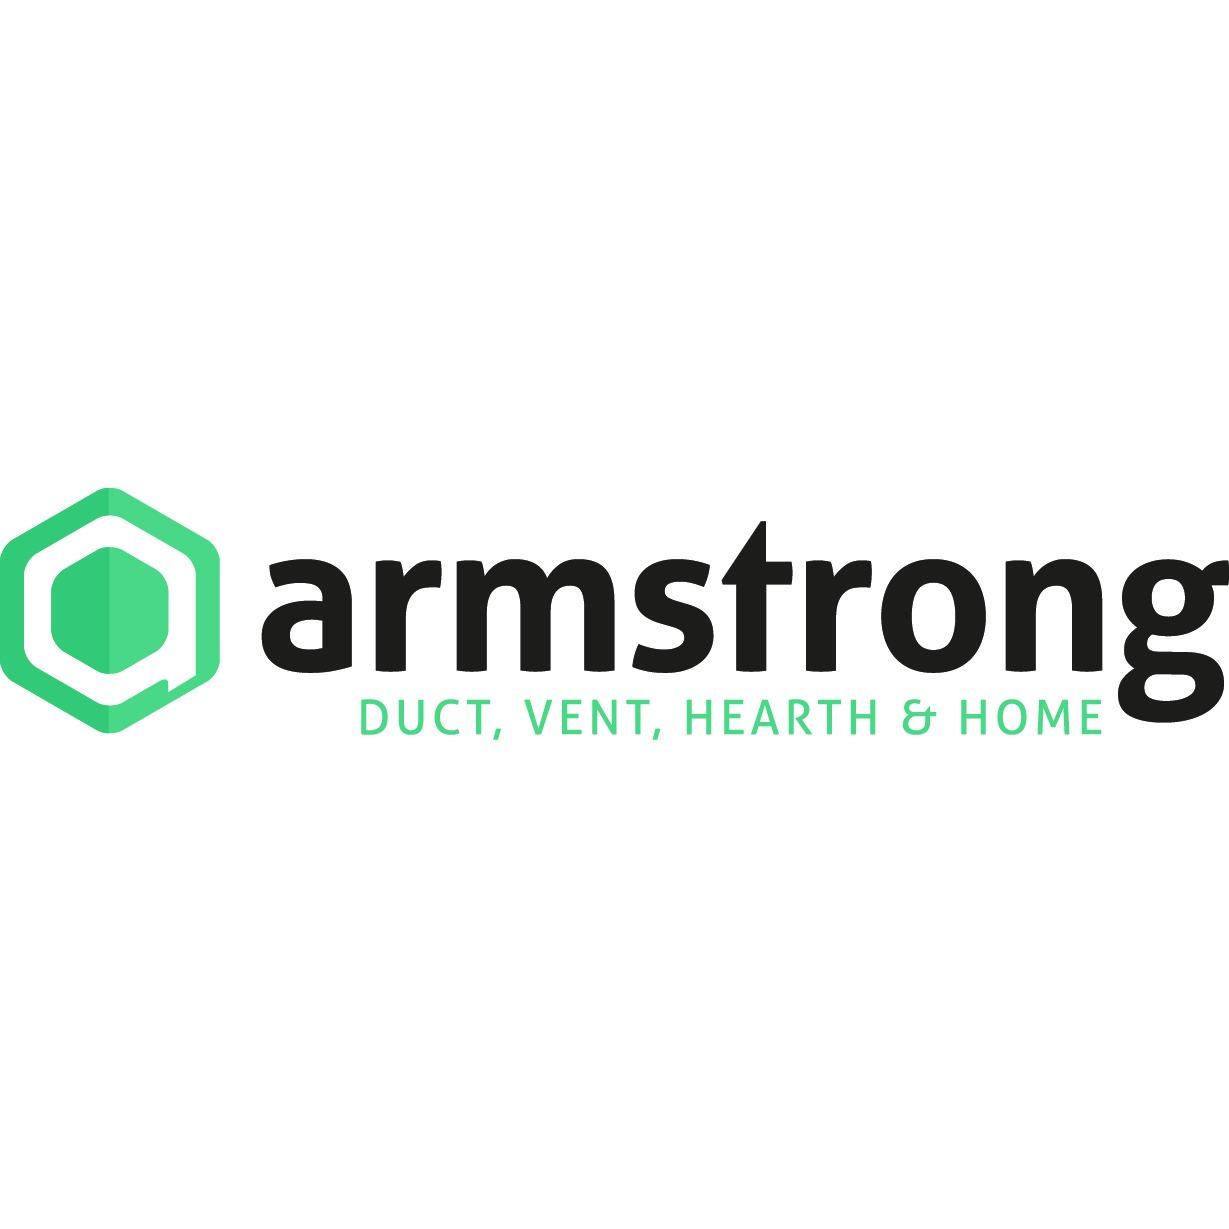 Armstrong Duct, Vent, Hearth & Home